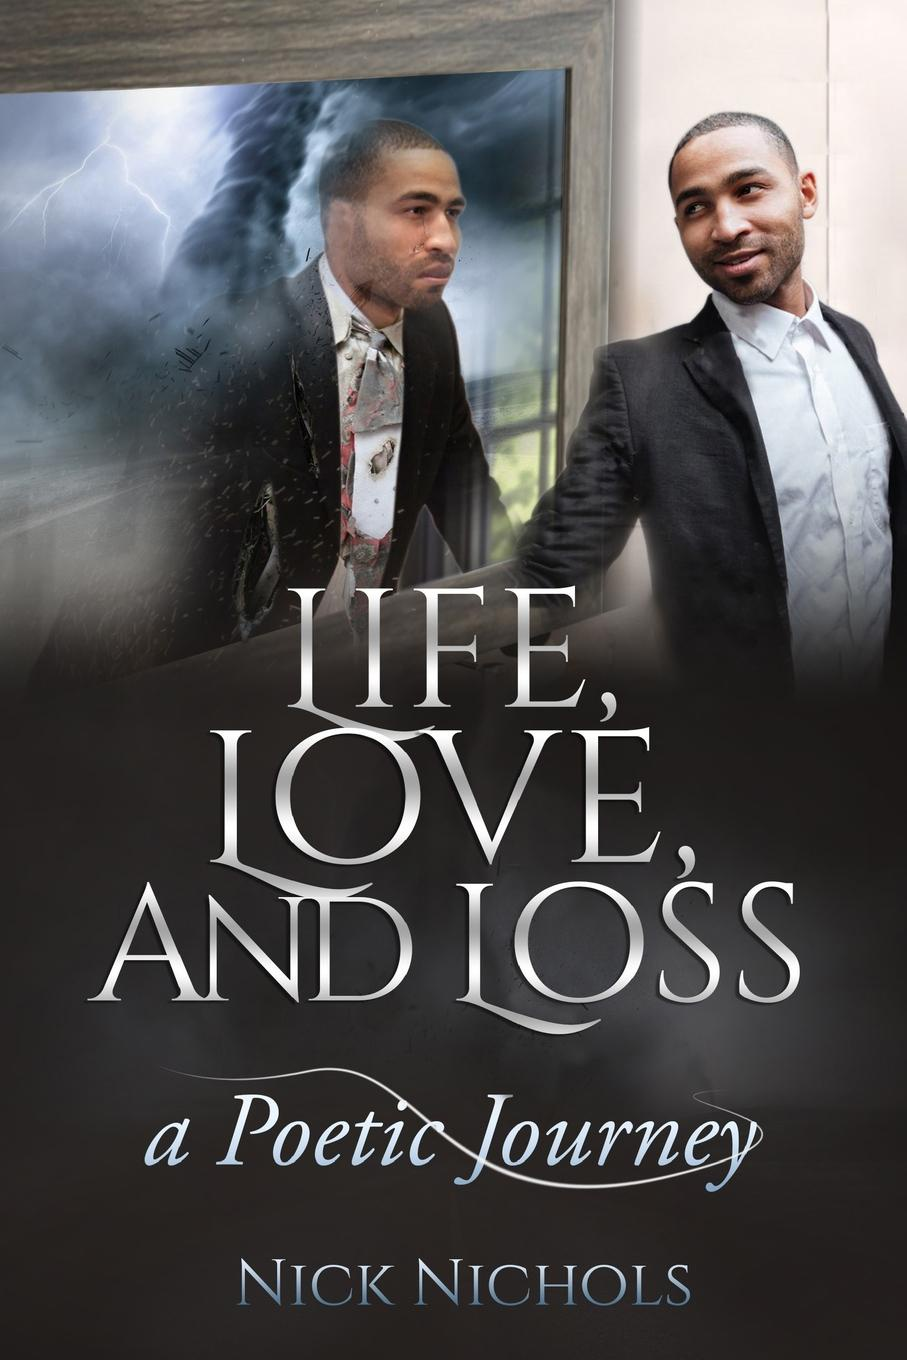 Nick Nichols Life, Love and Loss. A Poetic Journey loretta mckee the sun and the shrub book 2 the journey of hope